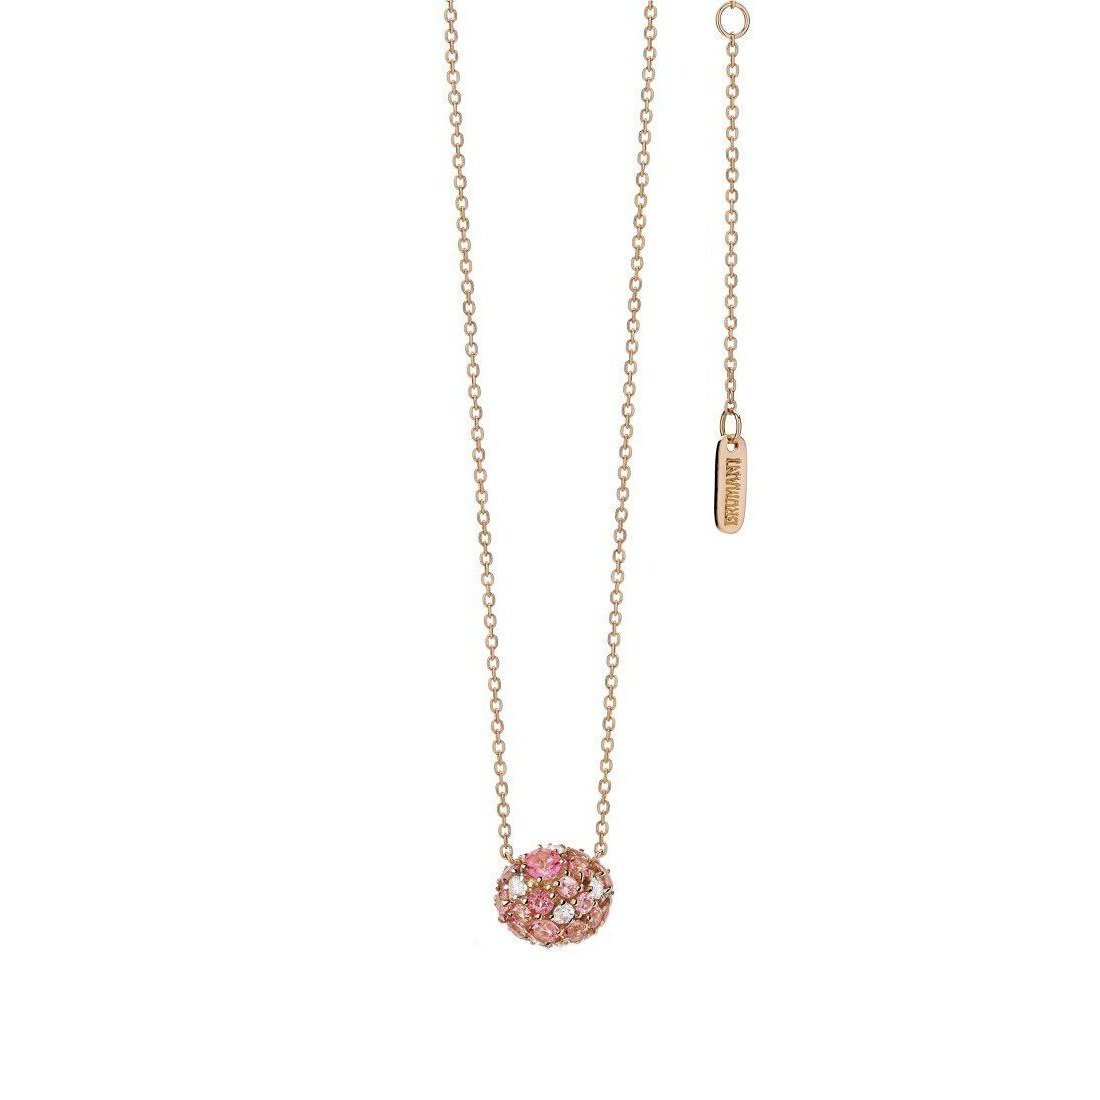 Brumani Baobab Bubbles Necklace in Yellow Gold 3eUZ6AN